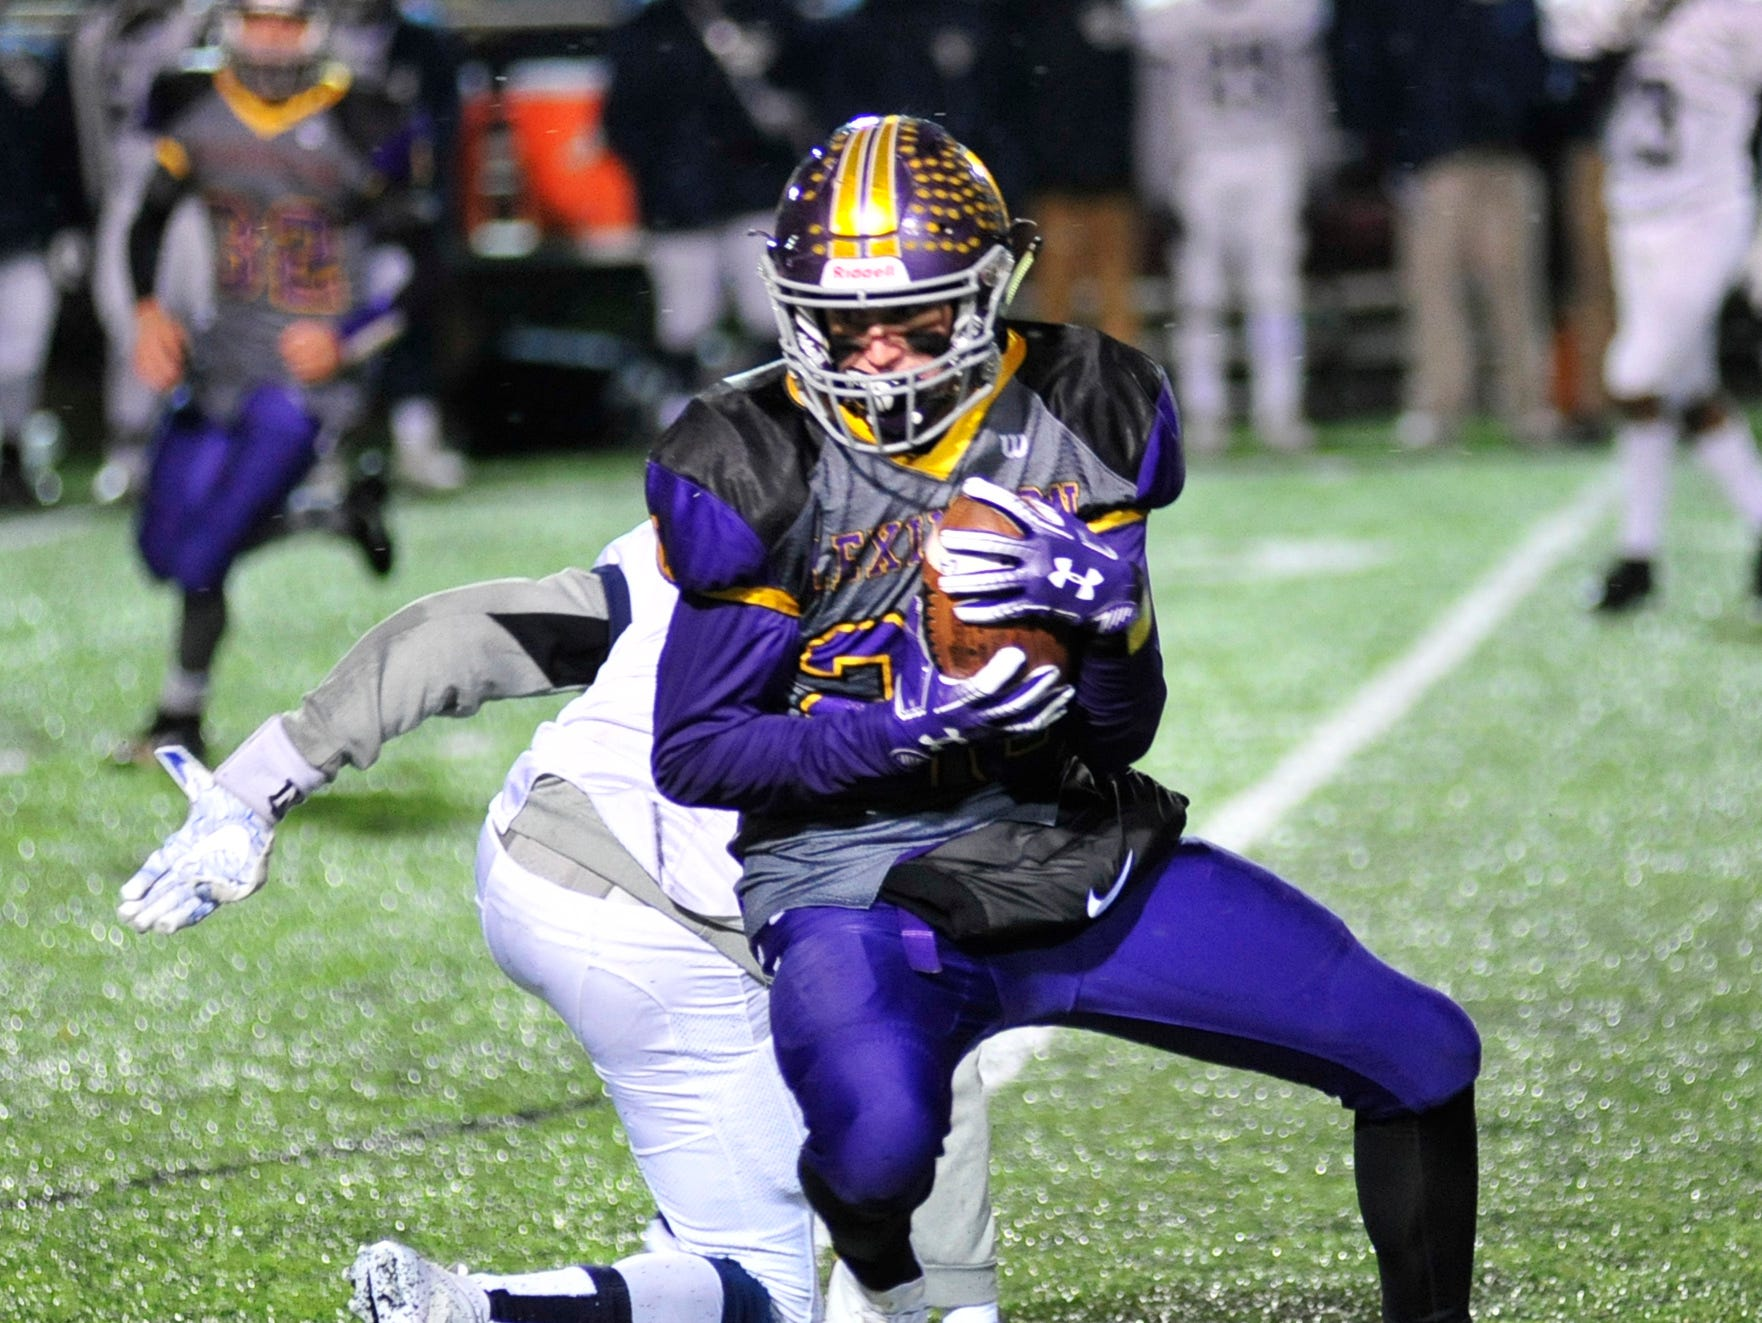 Lexington's Dylan Christman runs with the ball while playing at Willard High School on Friday.